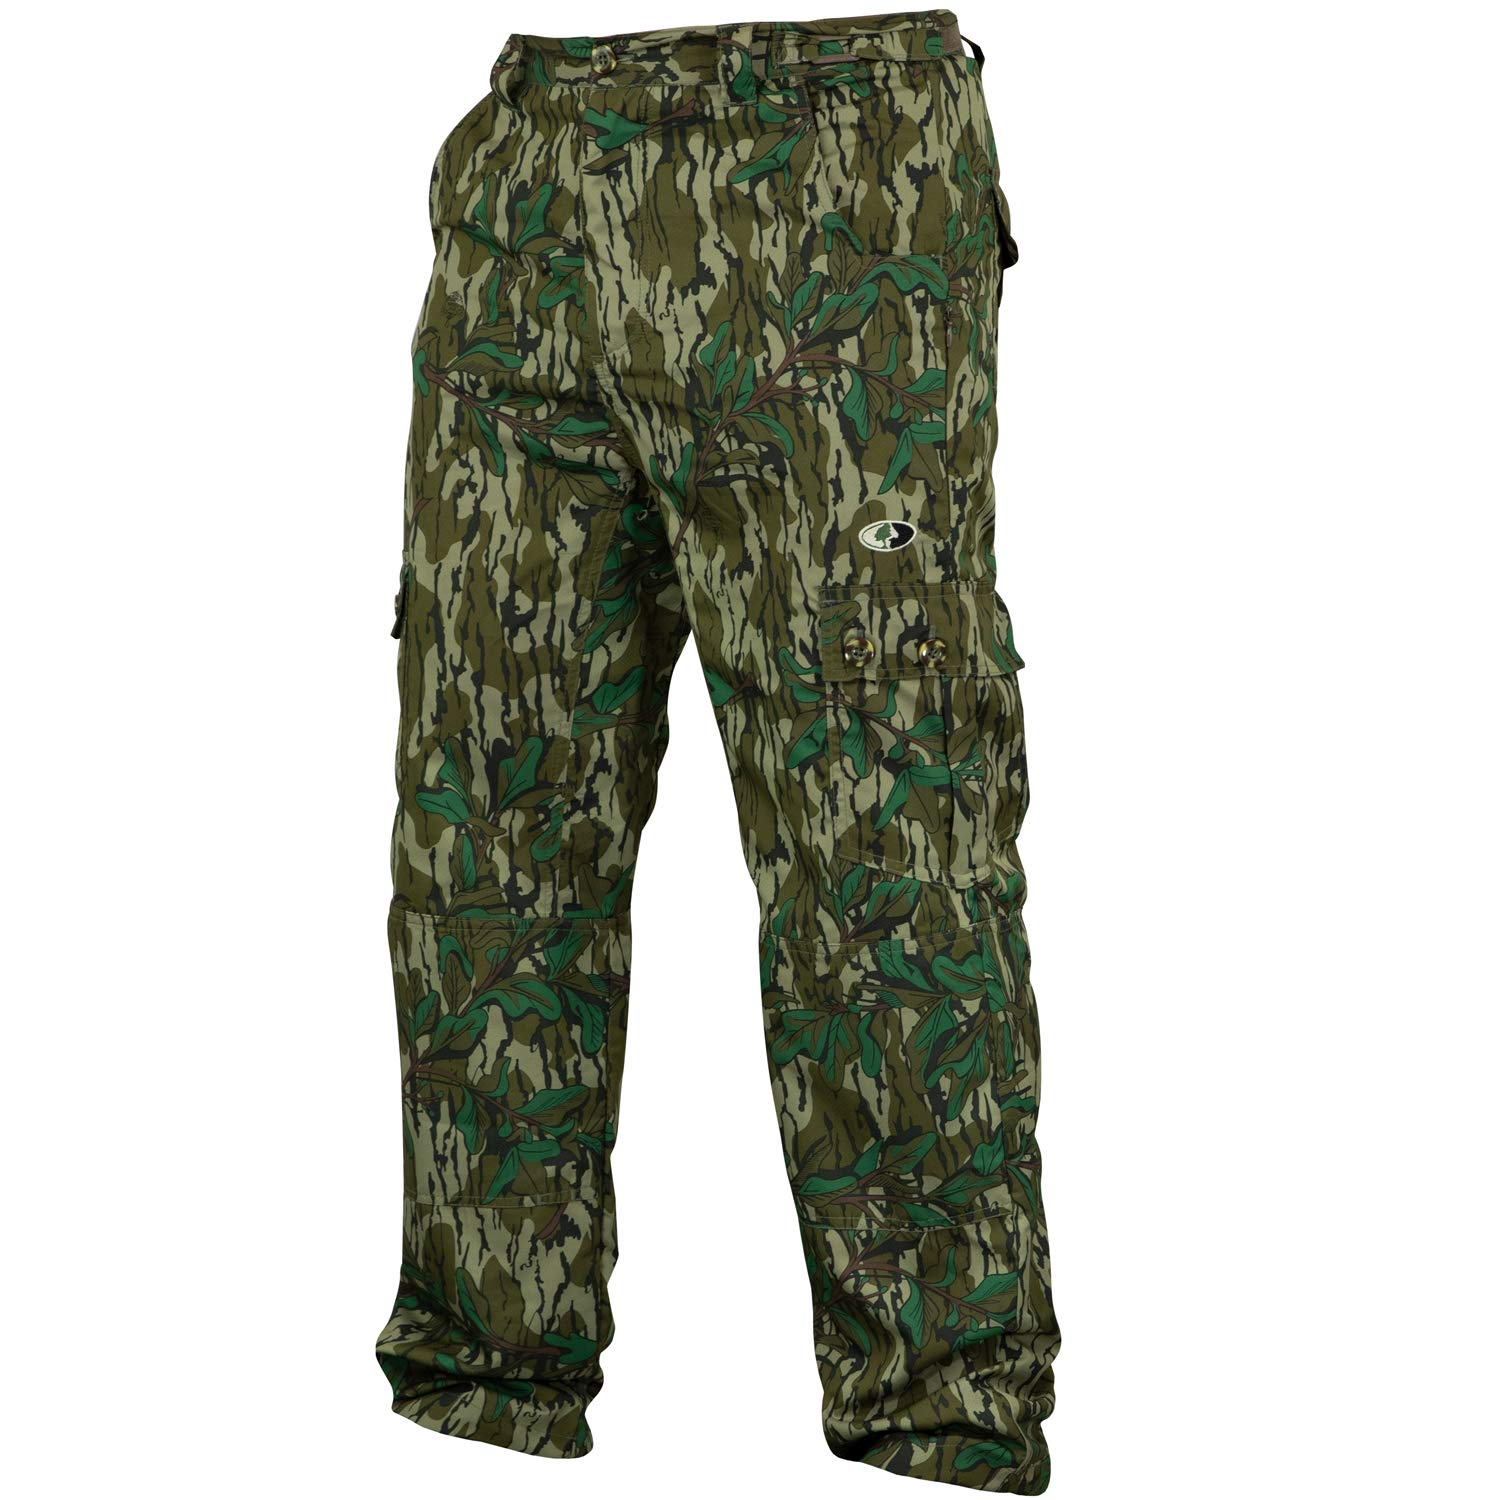 Mossy Oak Camo Lightweight Hunting Pants for Men Camouflage Clothing, Small, Greenleaf by Mossy Oak